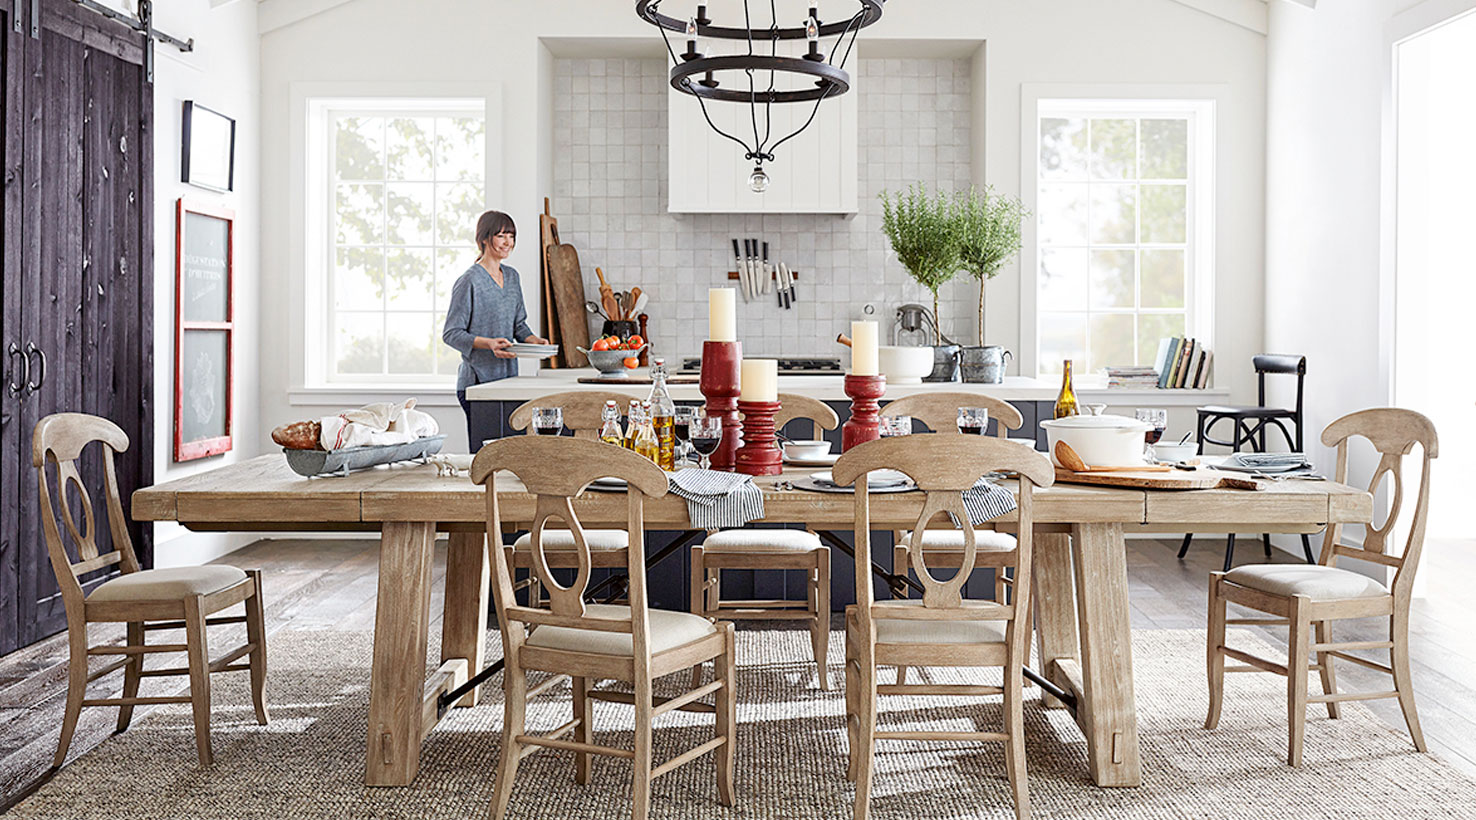 https://images.sherwin-williams.com/content_images/sw-img-diningrm-001-hdr.jpg